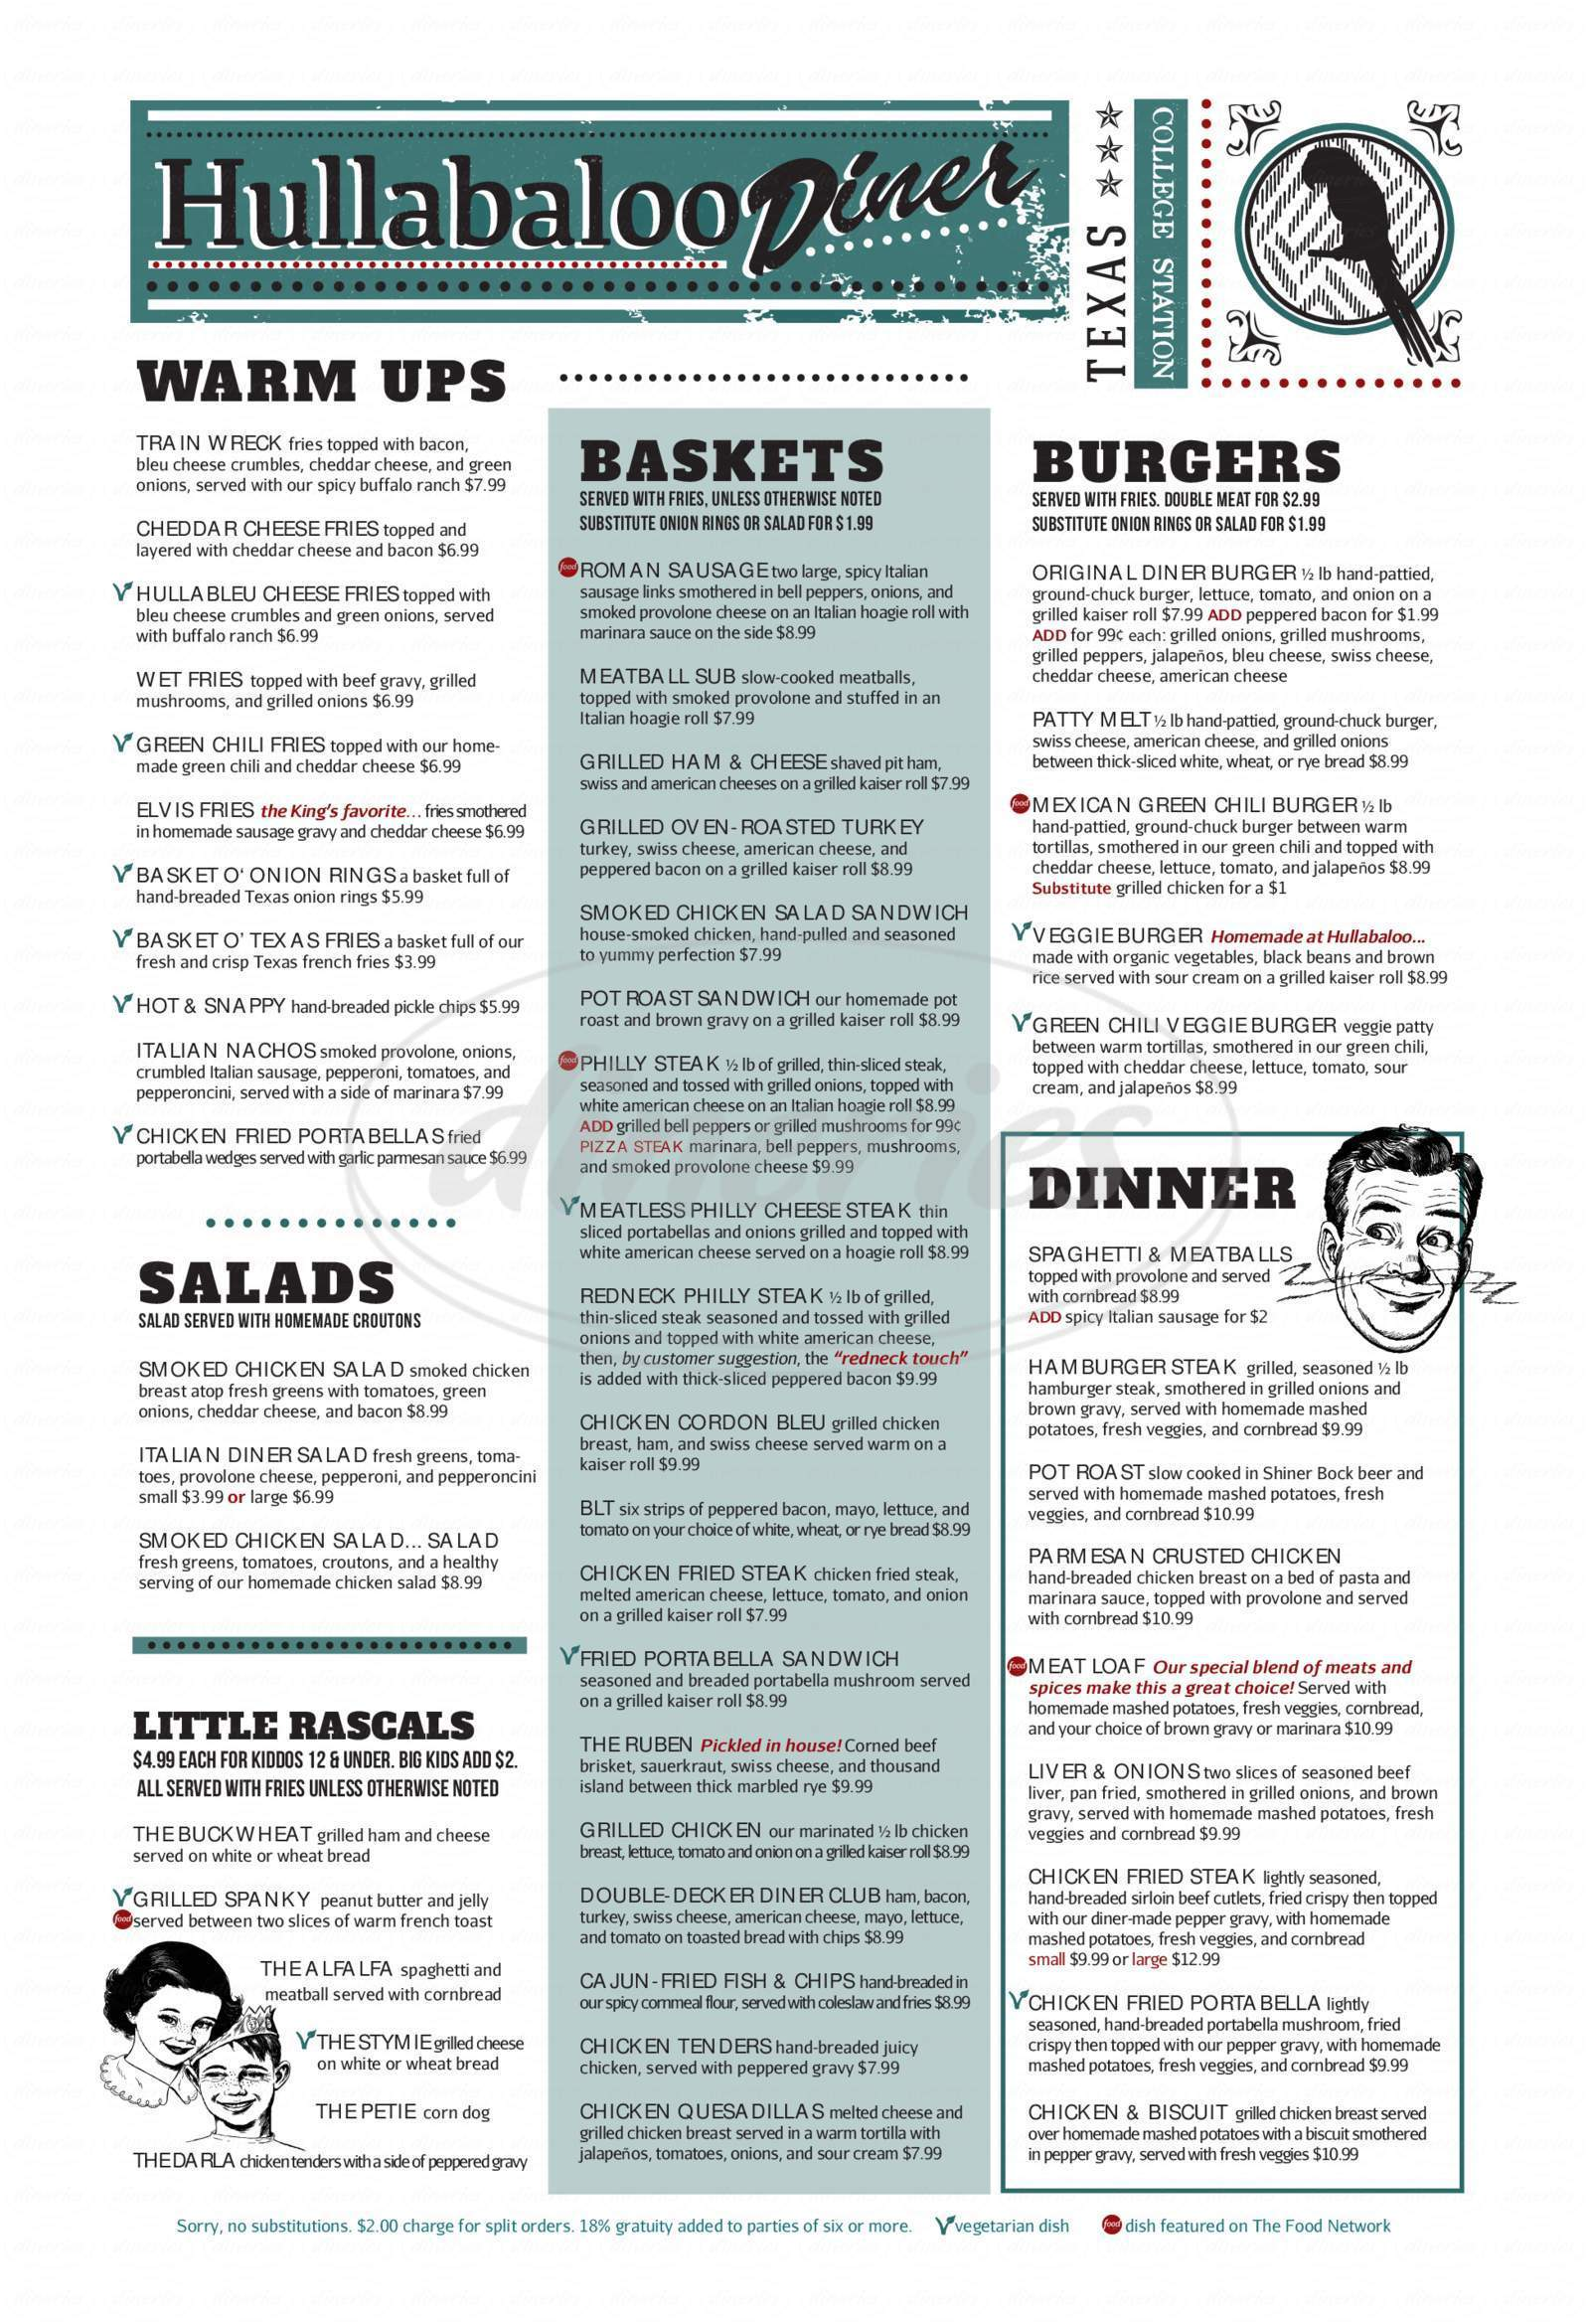 menu for Hullabaloo Diner